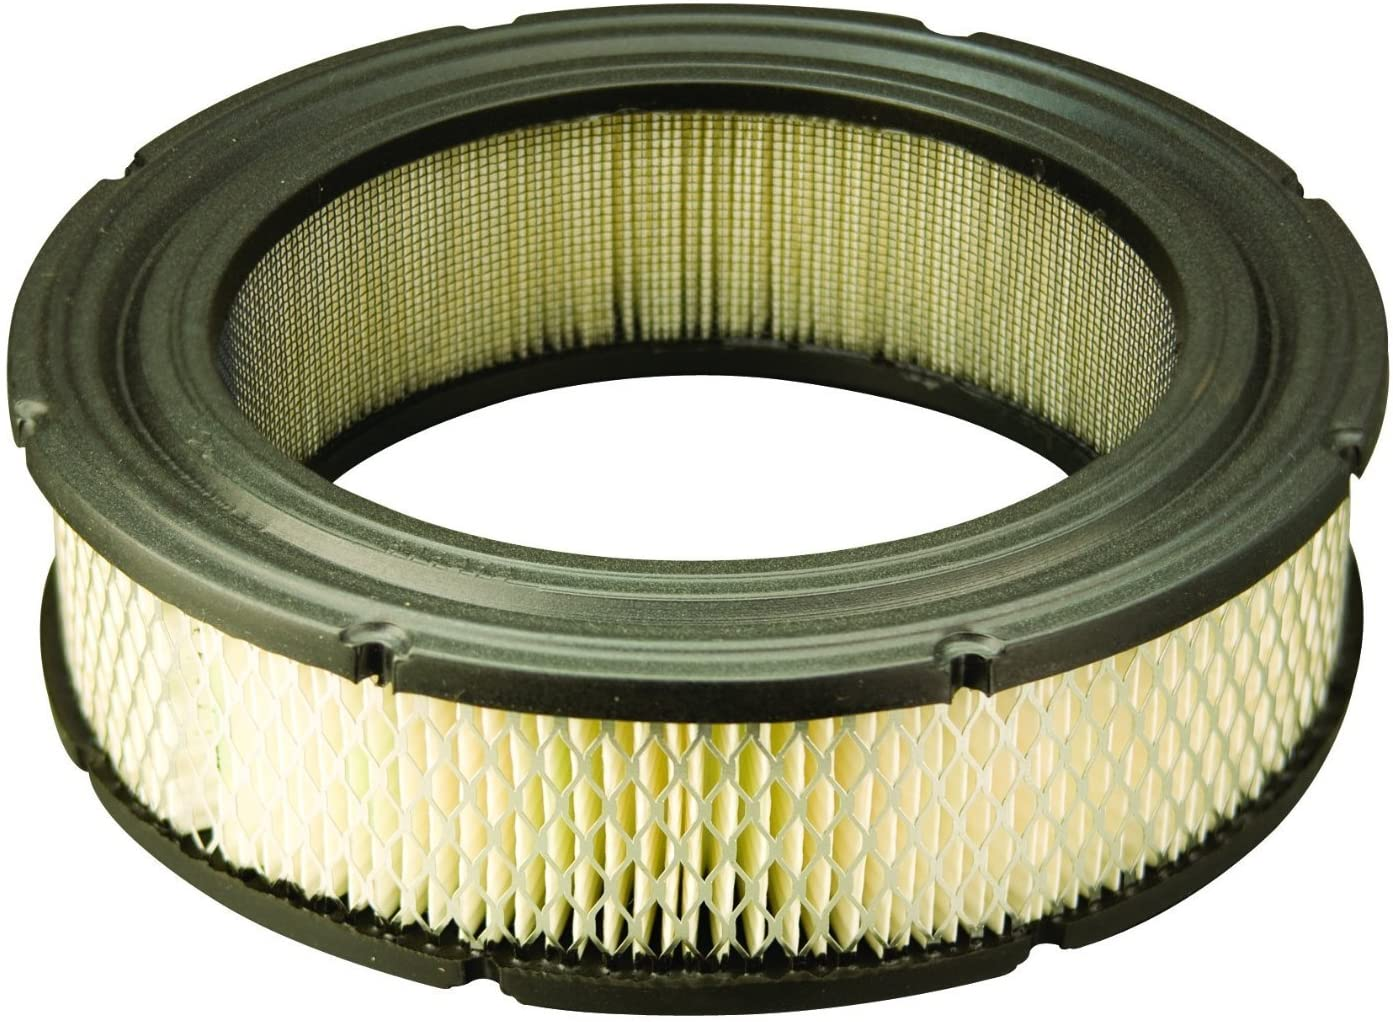 ISE Replacement Air Filter for Briggs & Stratton 4232, 692519, V-twin Vanguard engines